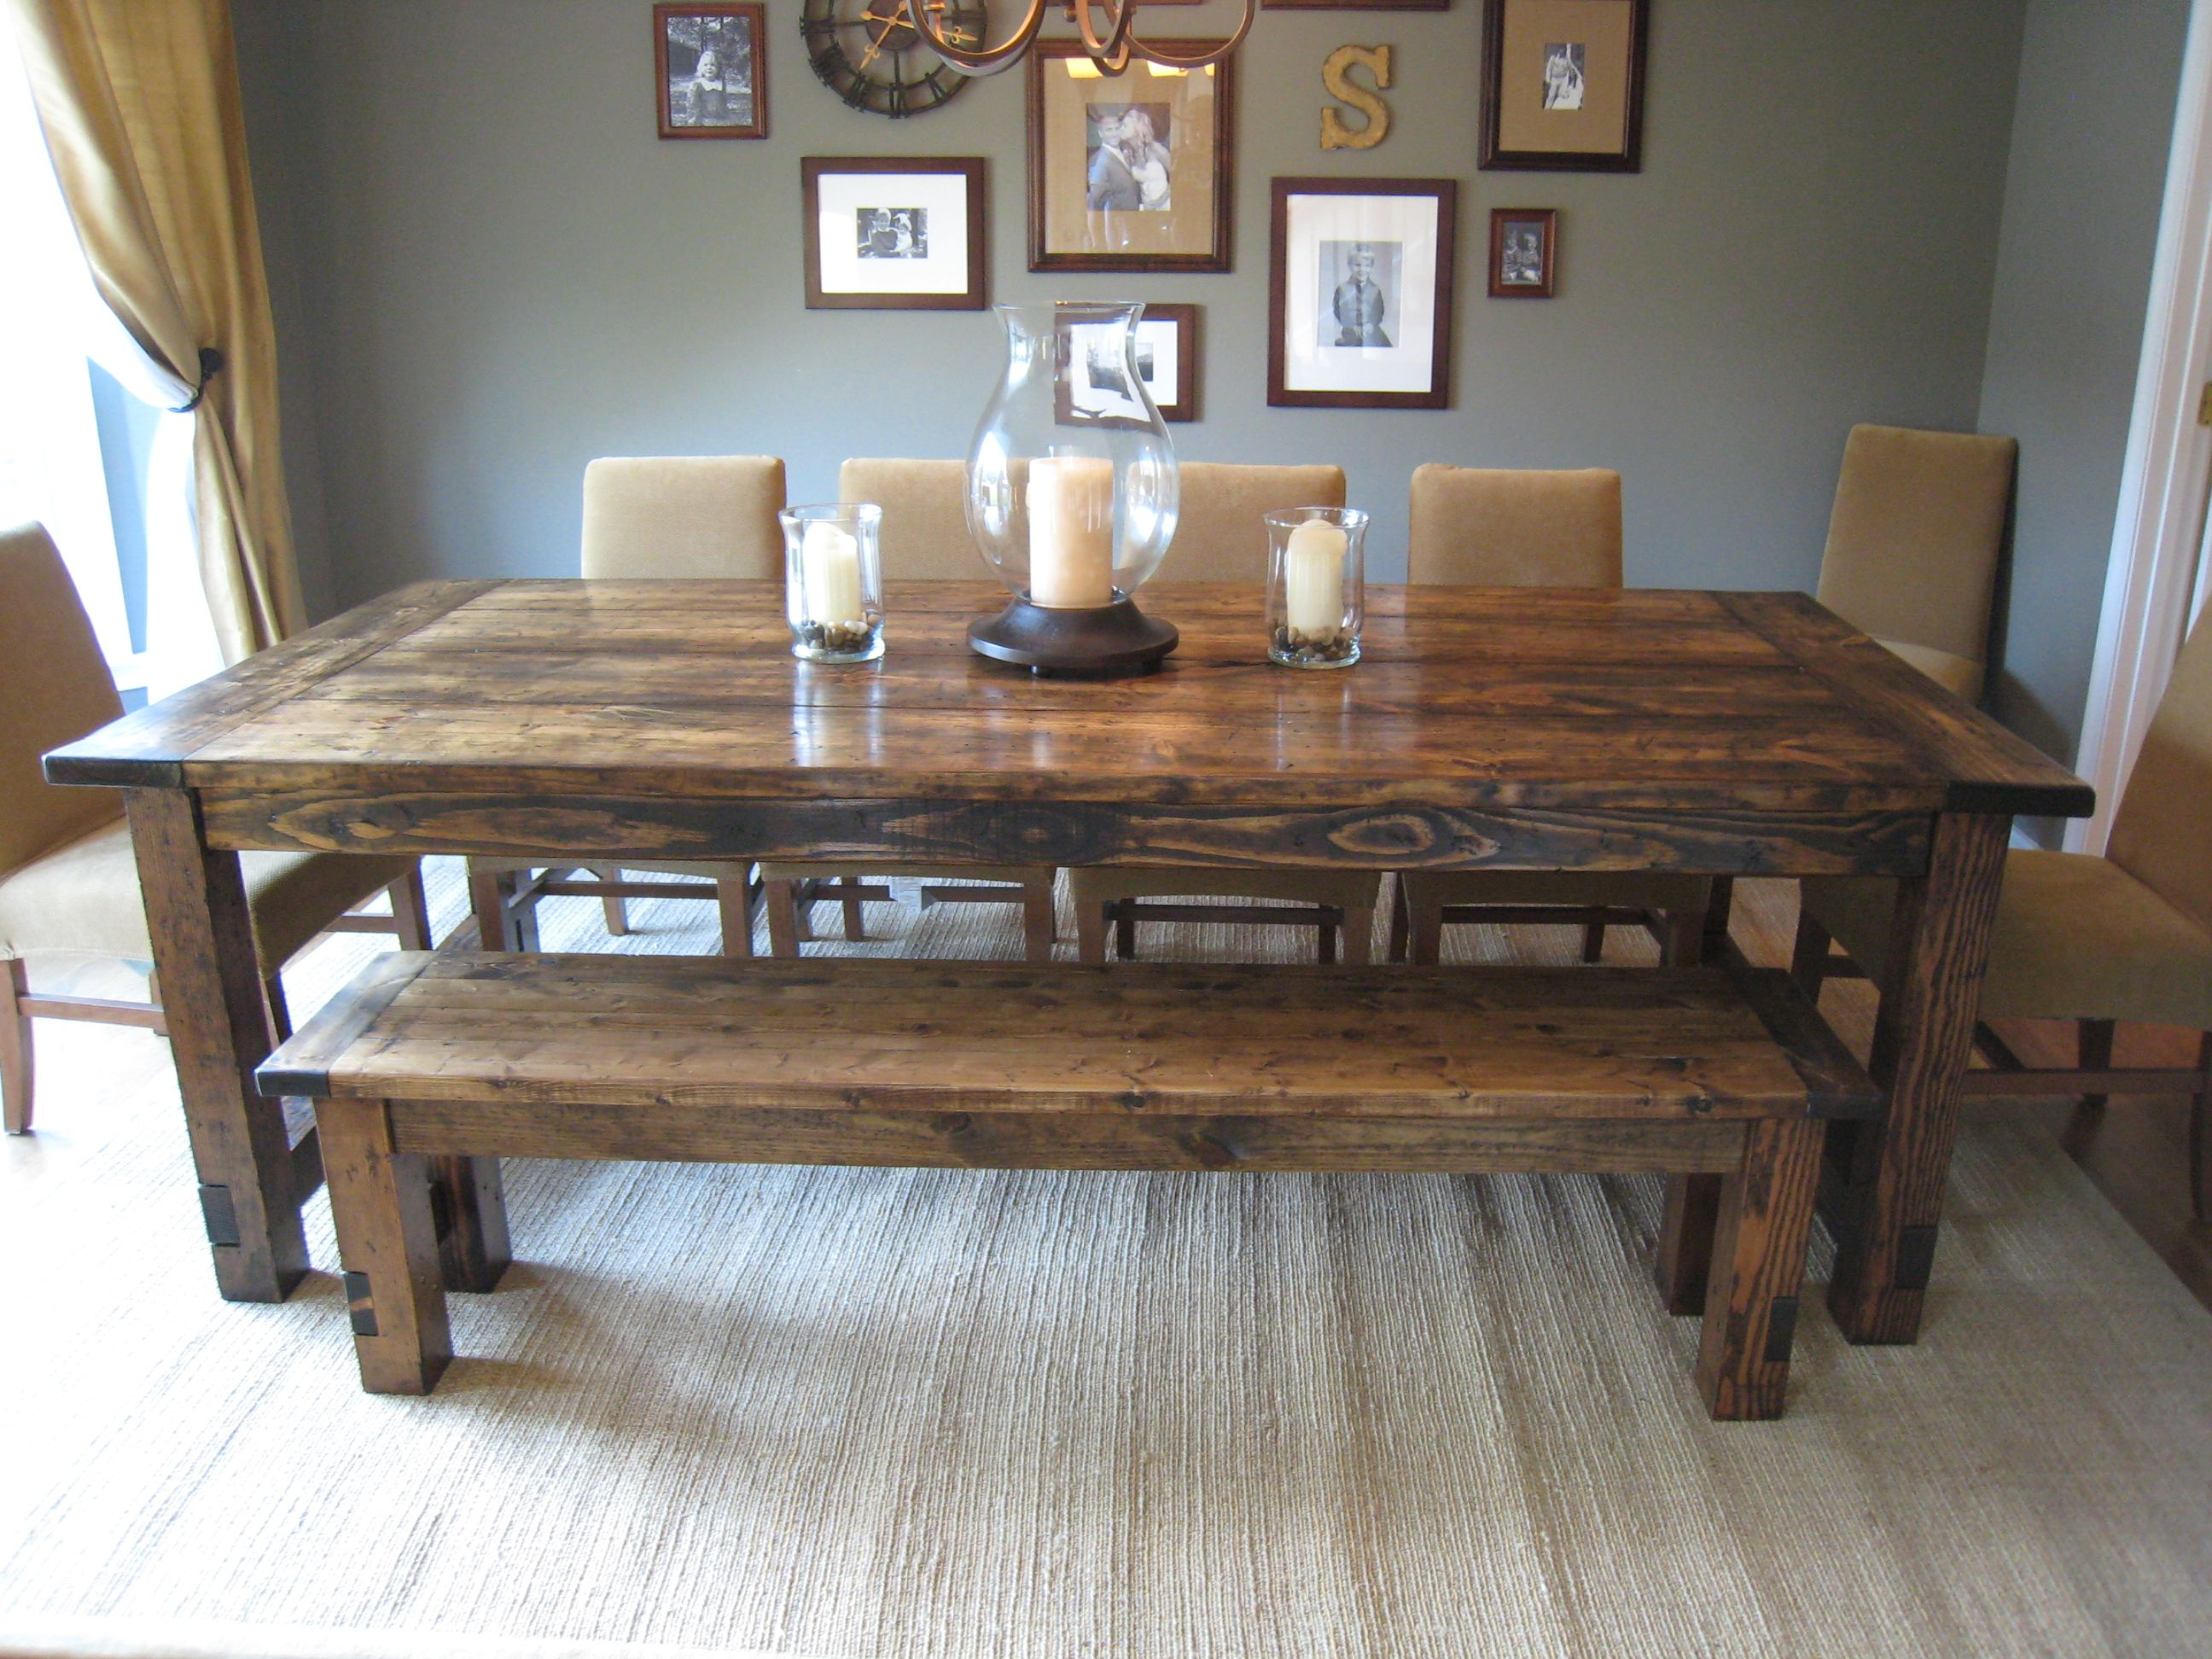 Restoration Hardware Farmhouse Table Replica. They made it ...